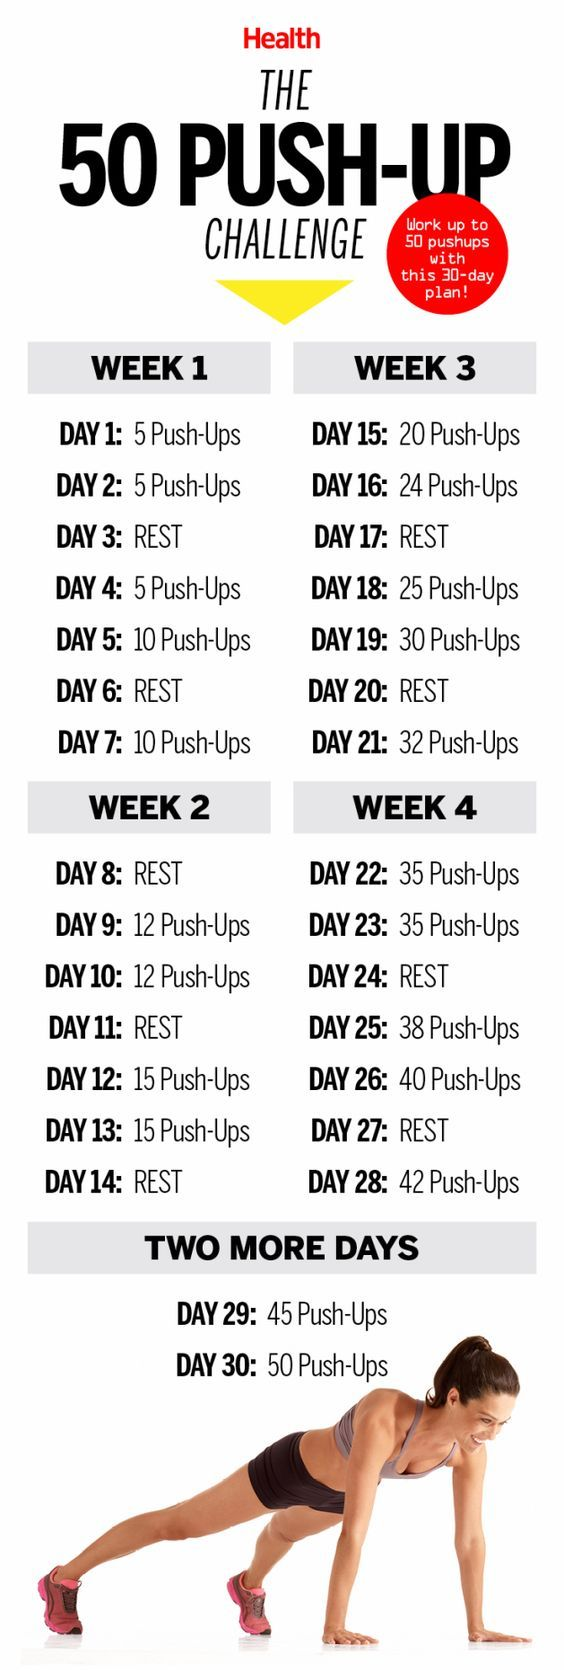 This 50 Push-Up Challenge Will Transform Your Body in 30 Days | Body Health